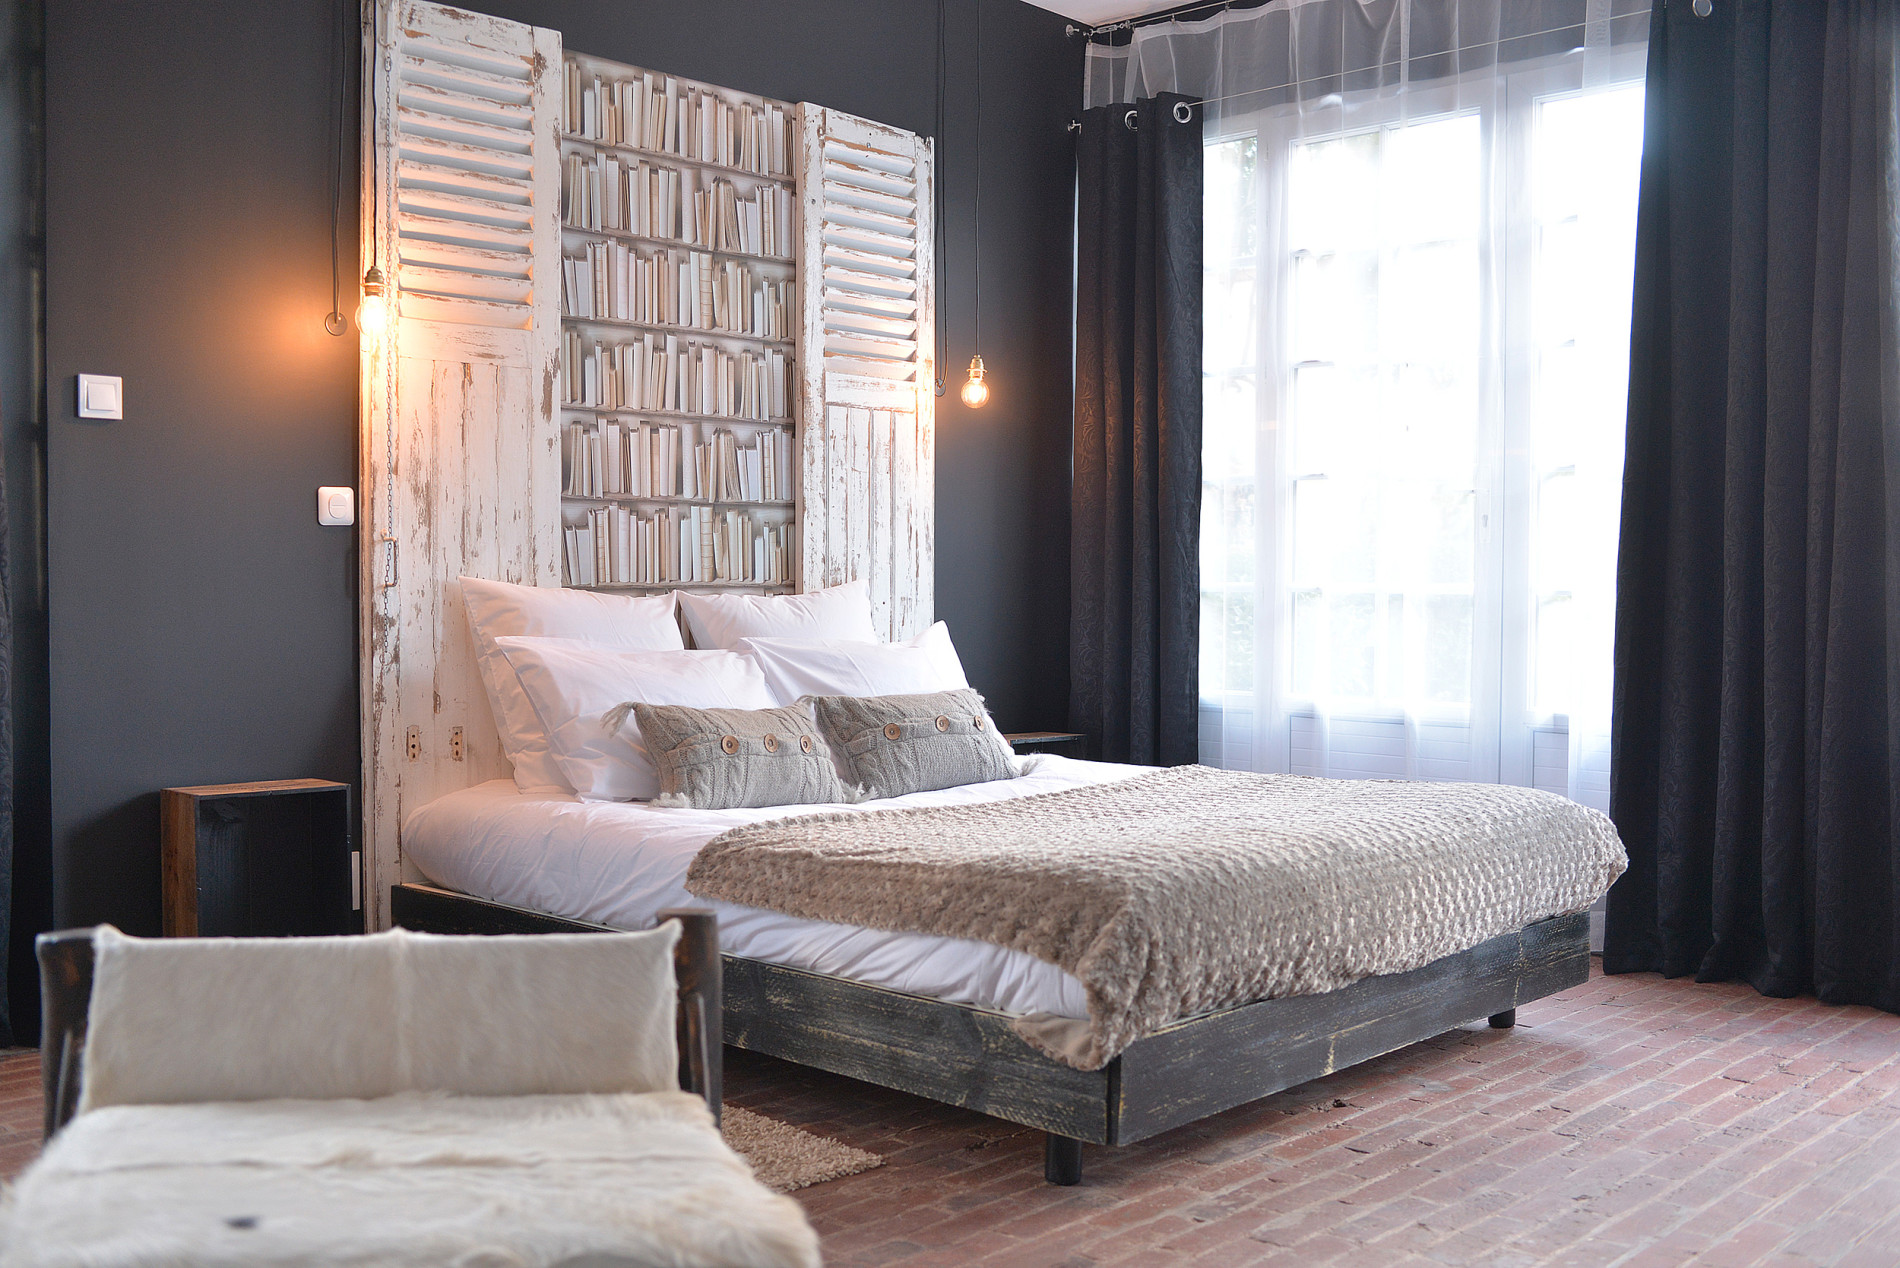 maison d 39 h tes compi gne dans l 39 oise 60 proche de paris site officiel. Black Bedroom Furniture Sets. Home Design Ideas